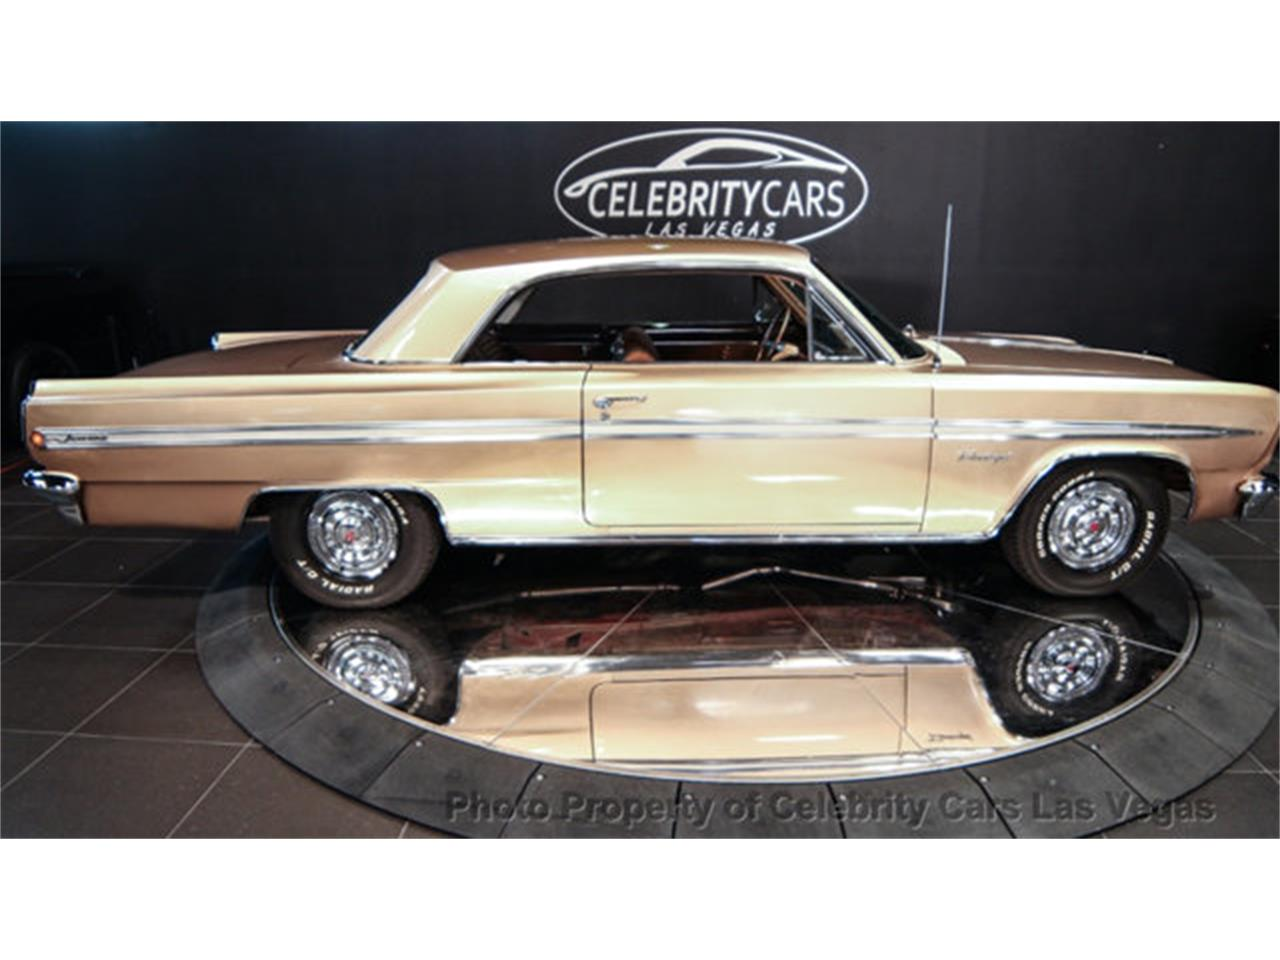 Large Picture of Classic 1963 Oldsmobile Jet fire Turbocharged - $61,500.00 Offered by Celebrity Cars Las Vegas - J98V